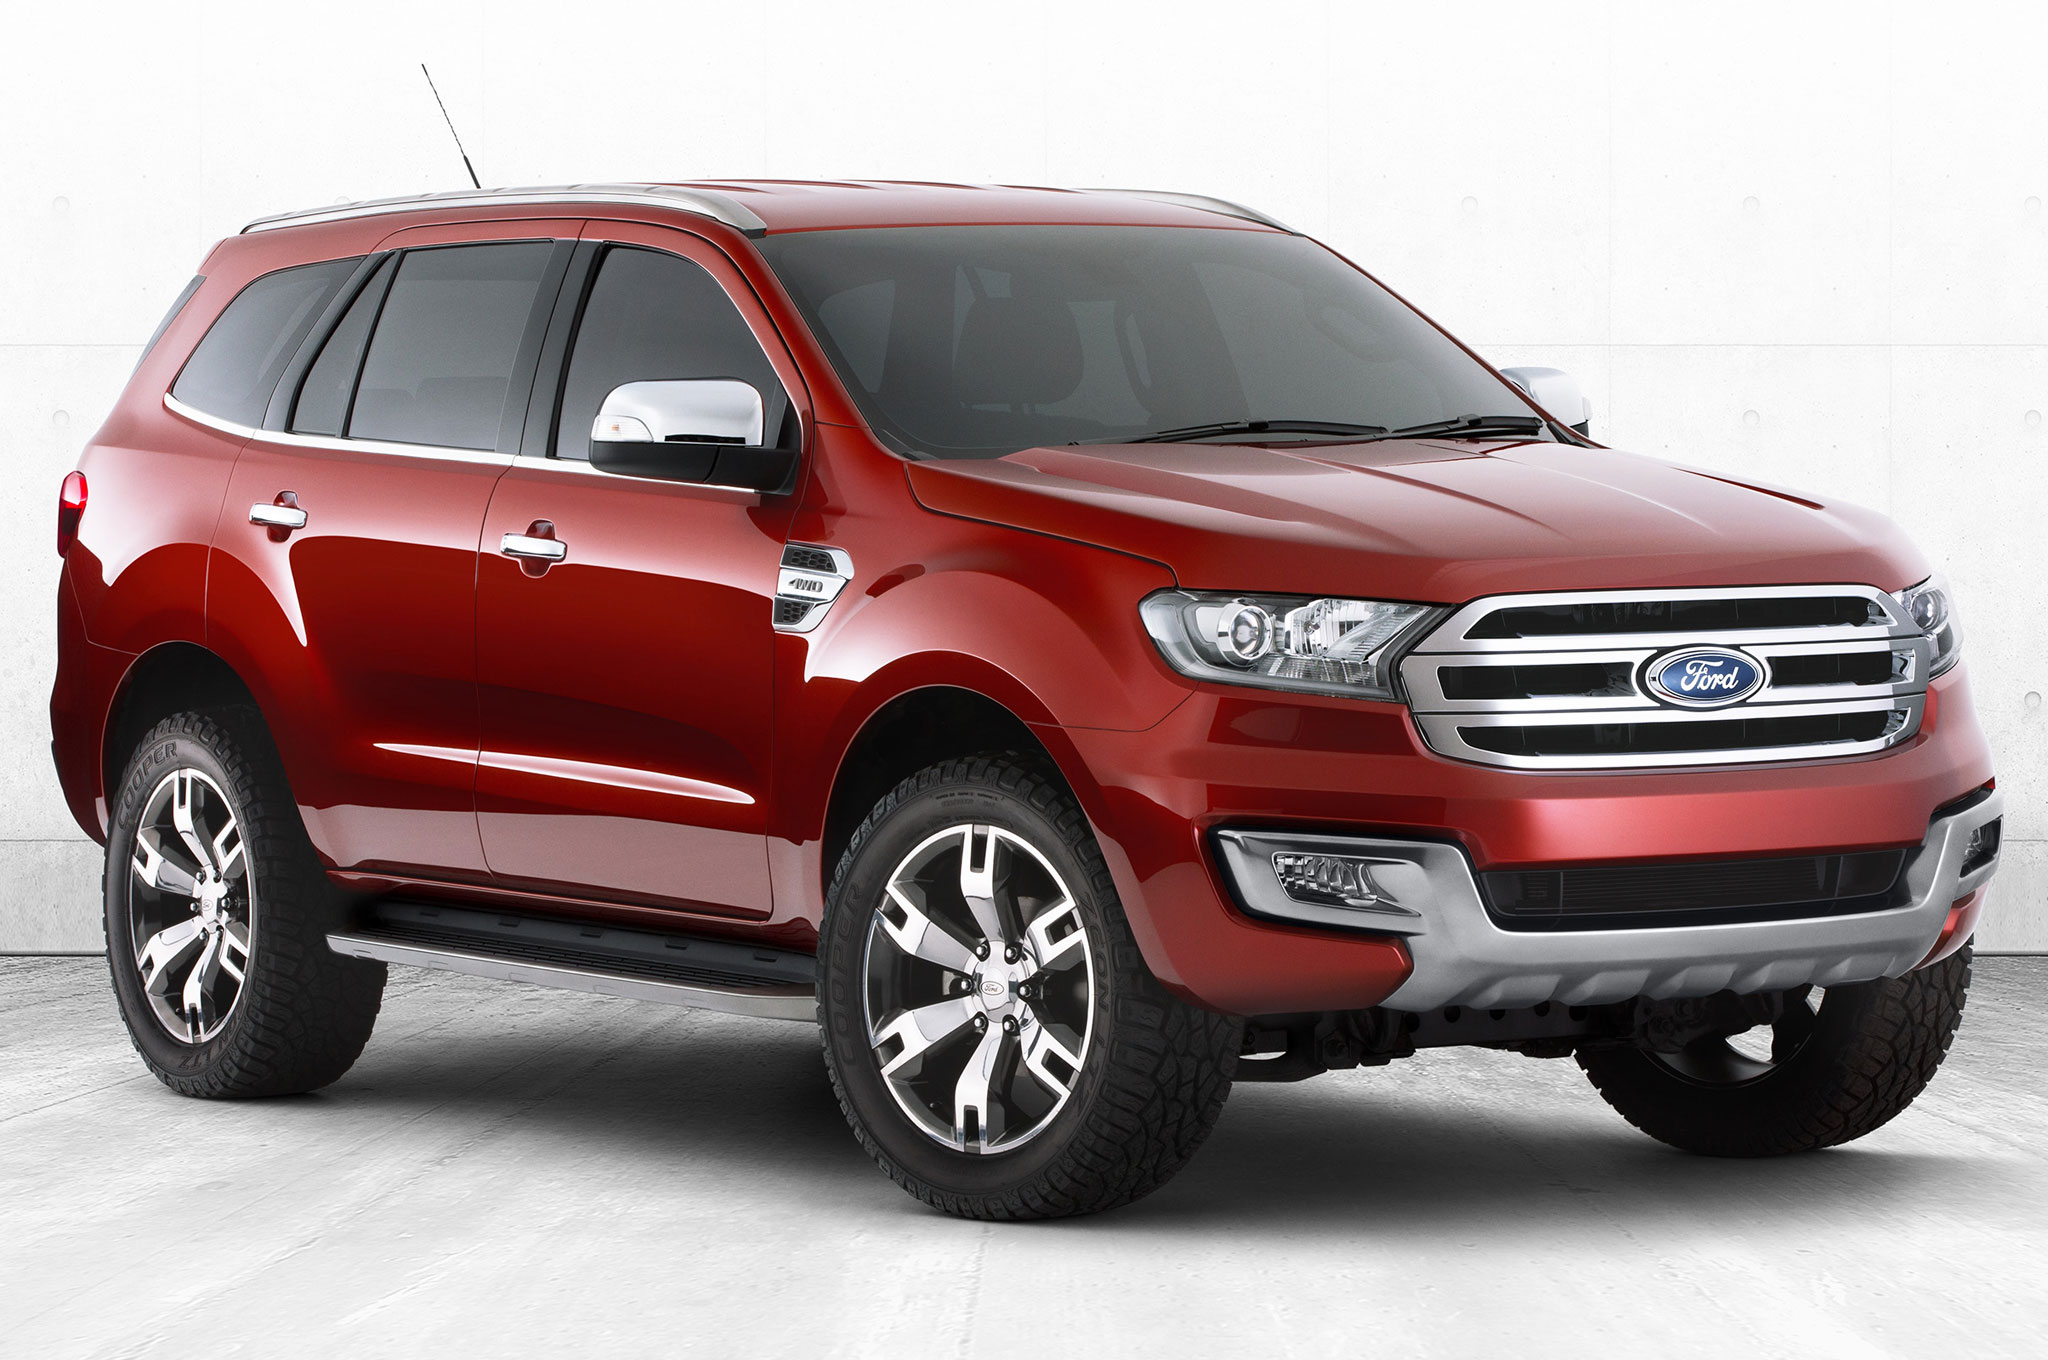 confirmed hero ford explorer out st by will to teaser news come drive be the suvs released